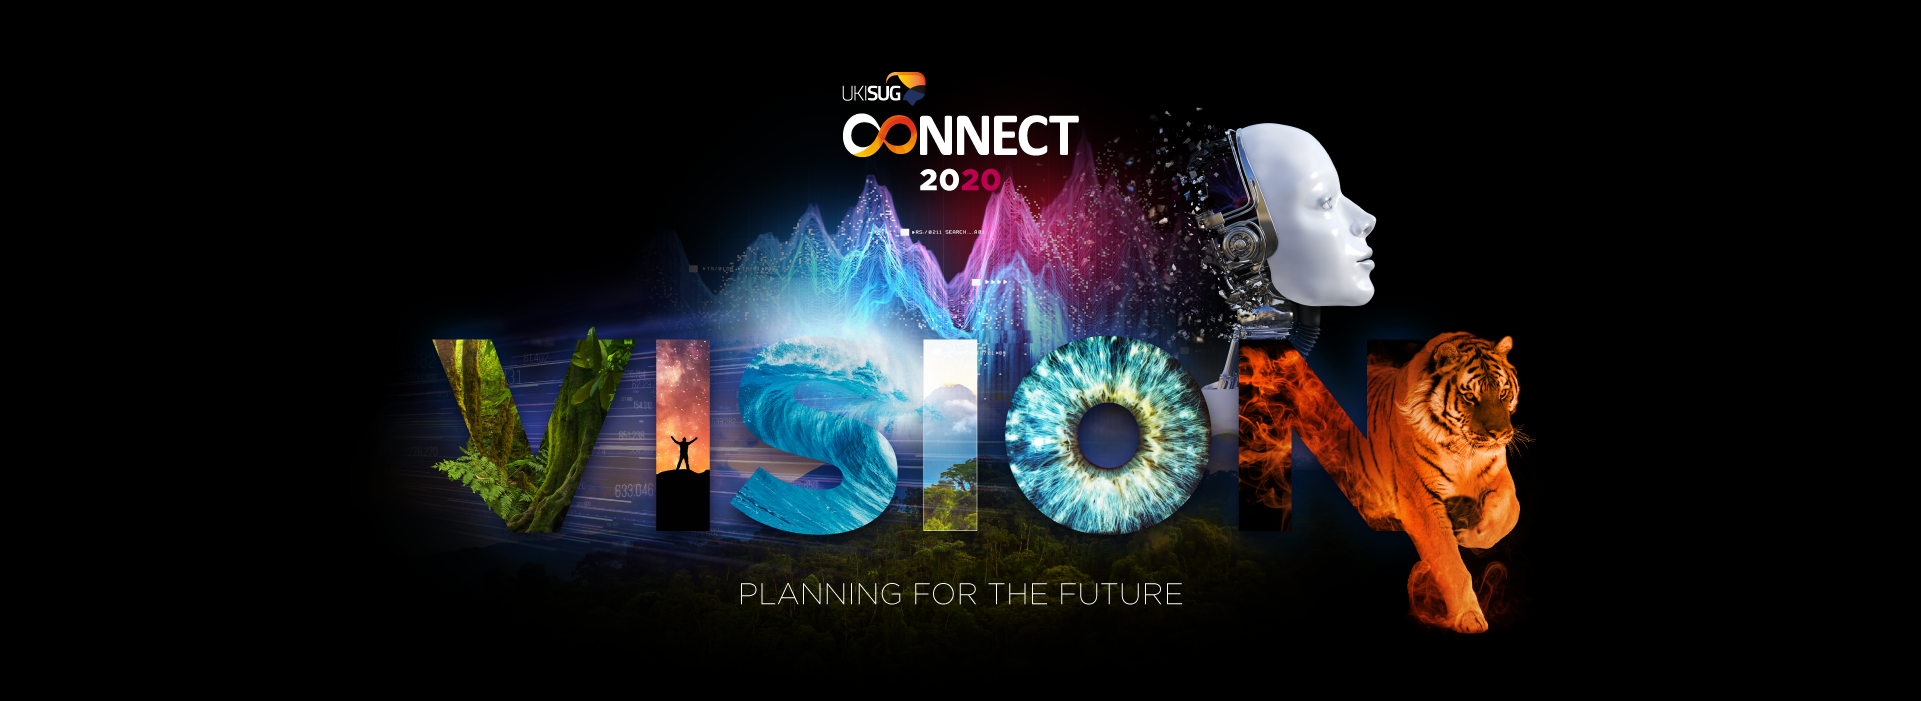 UKISUG Connect 2020